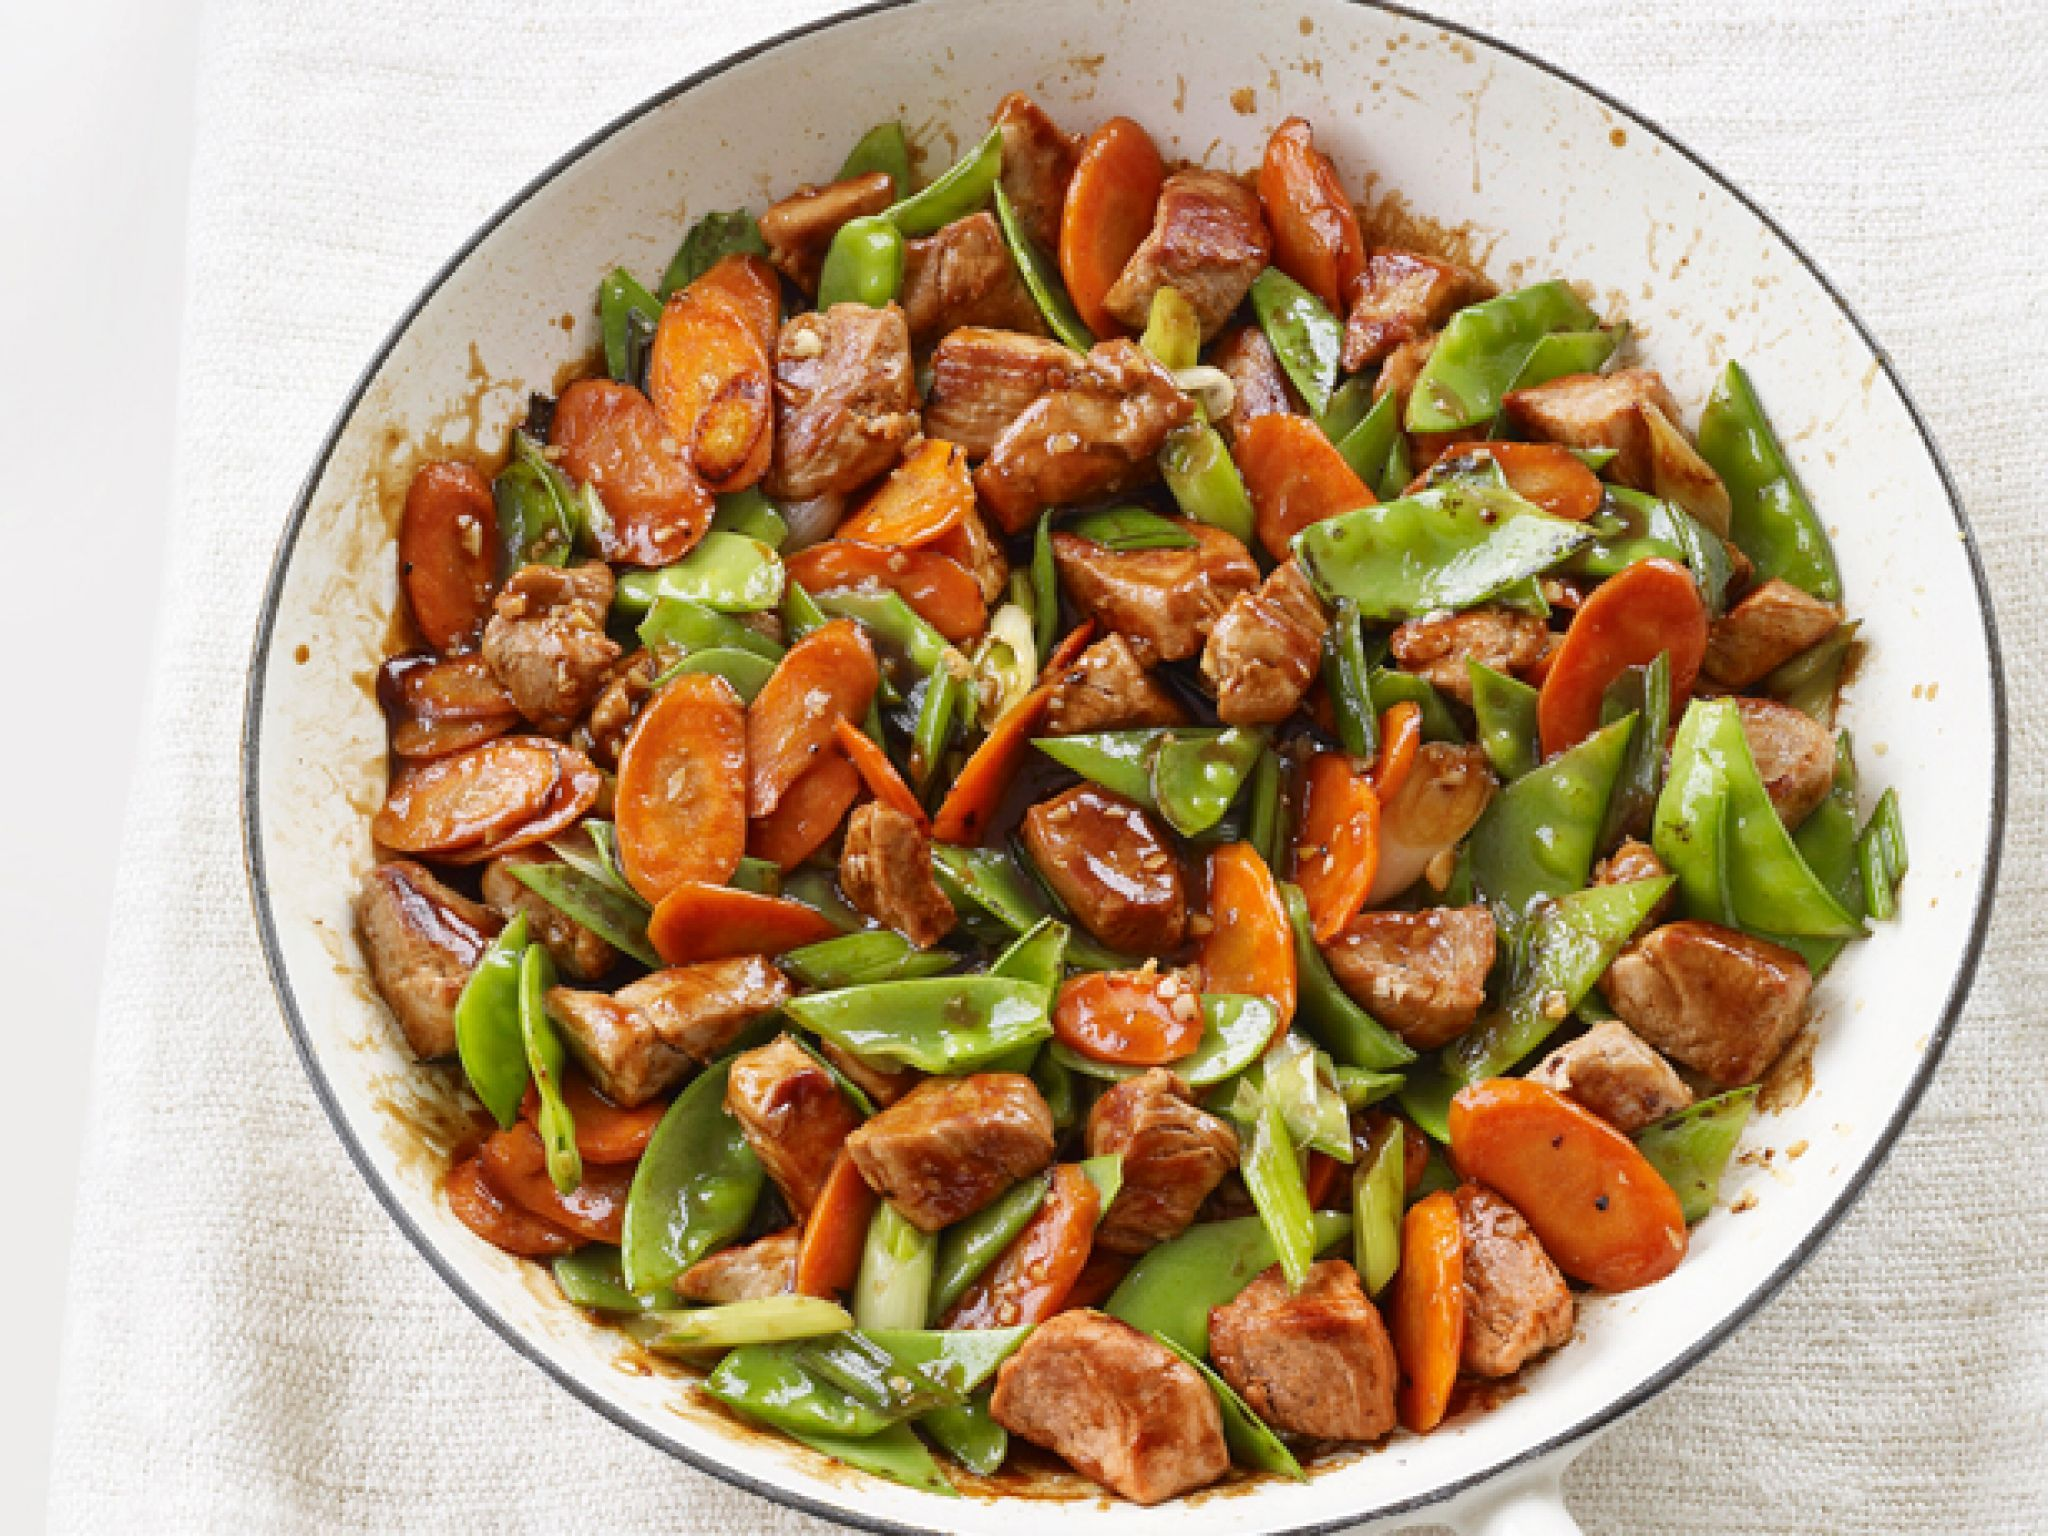 Healthy chinese recipes food network pork recipes pork and food healthy chinese recipes food network forumfinder Gallery